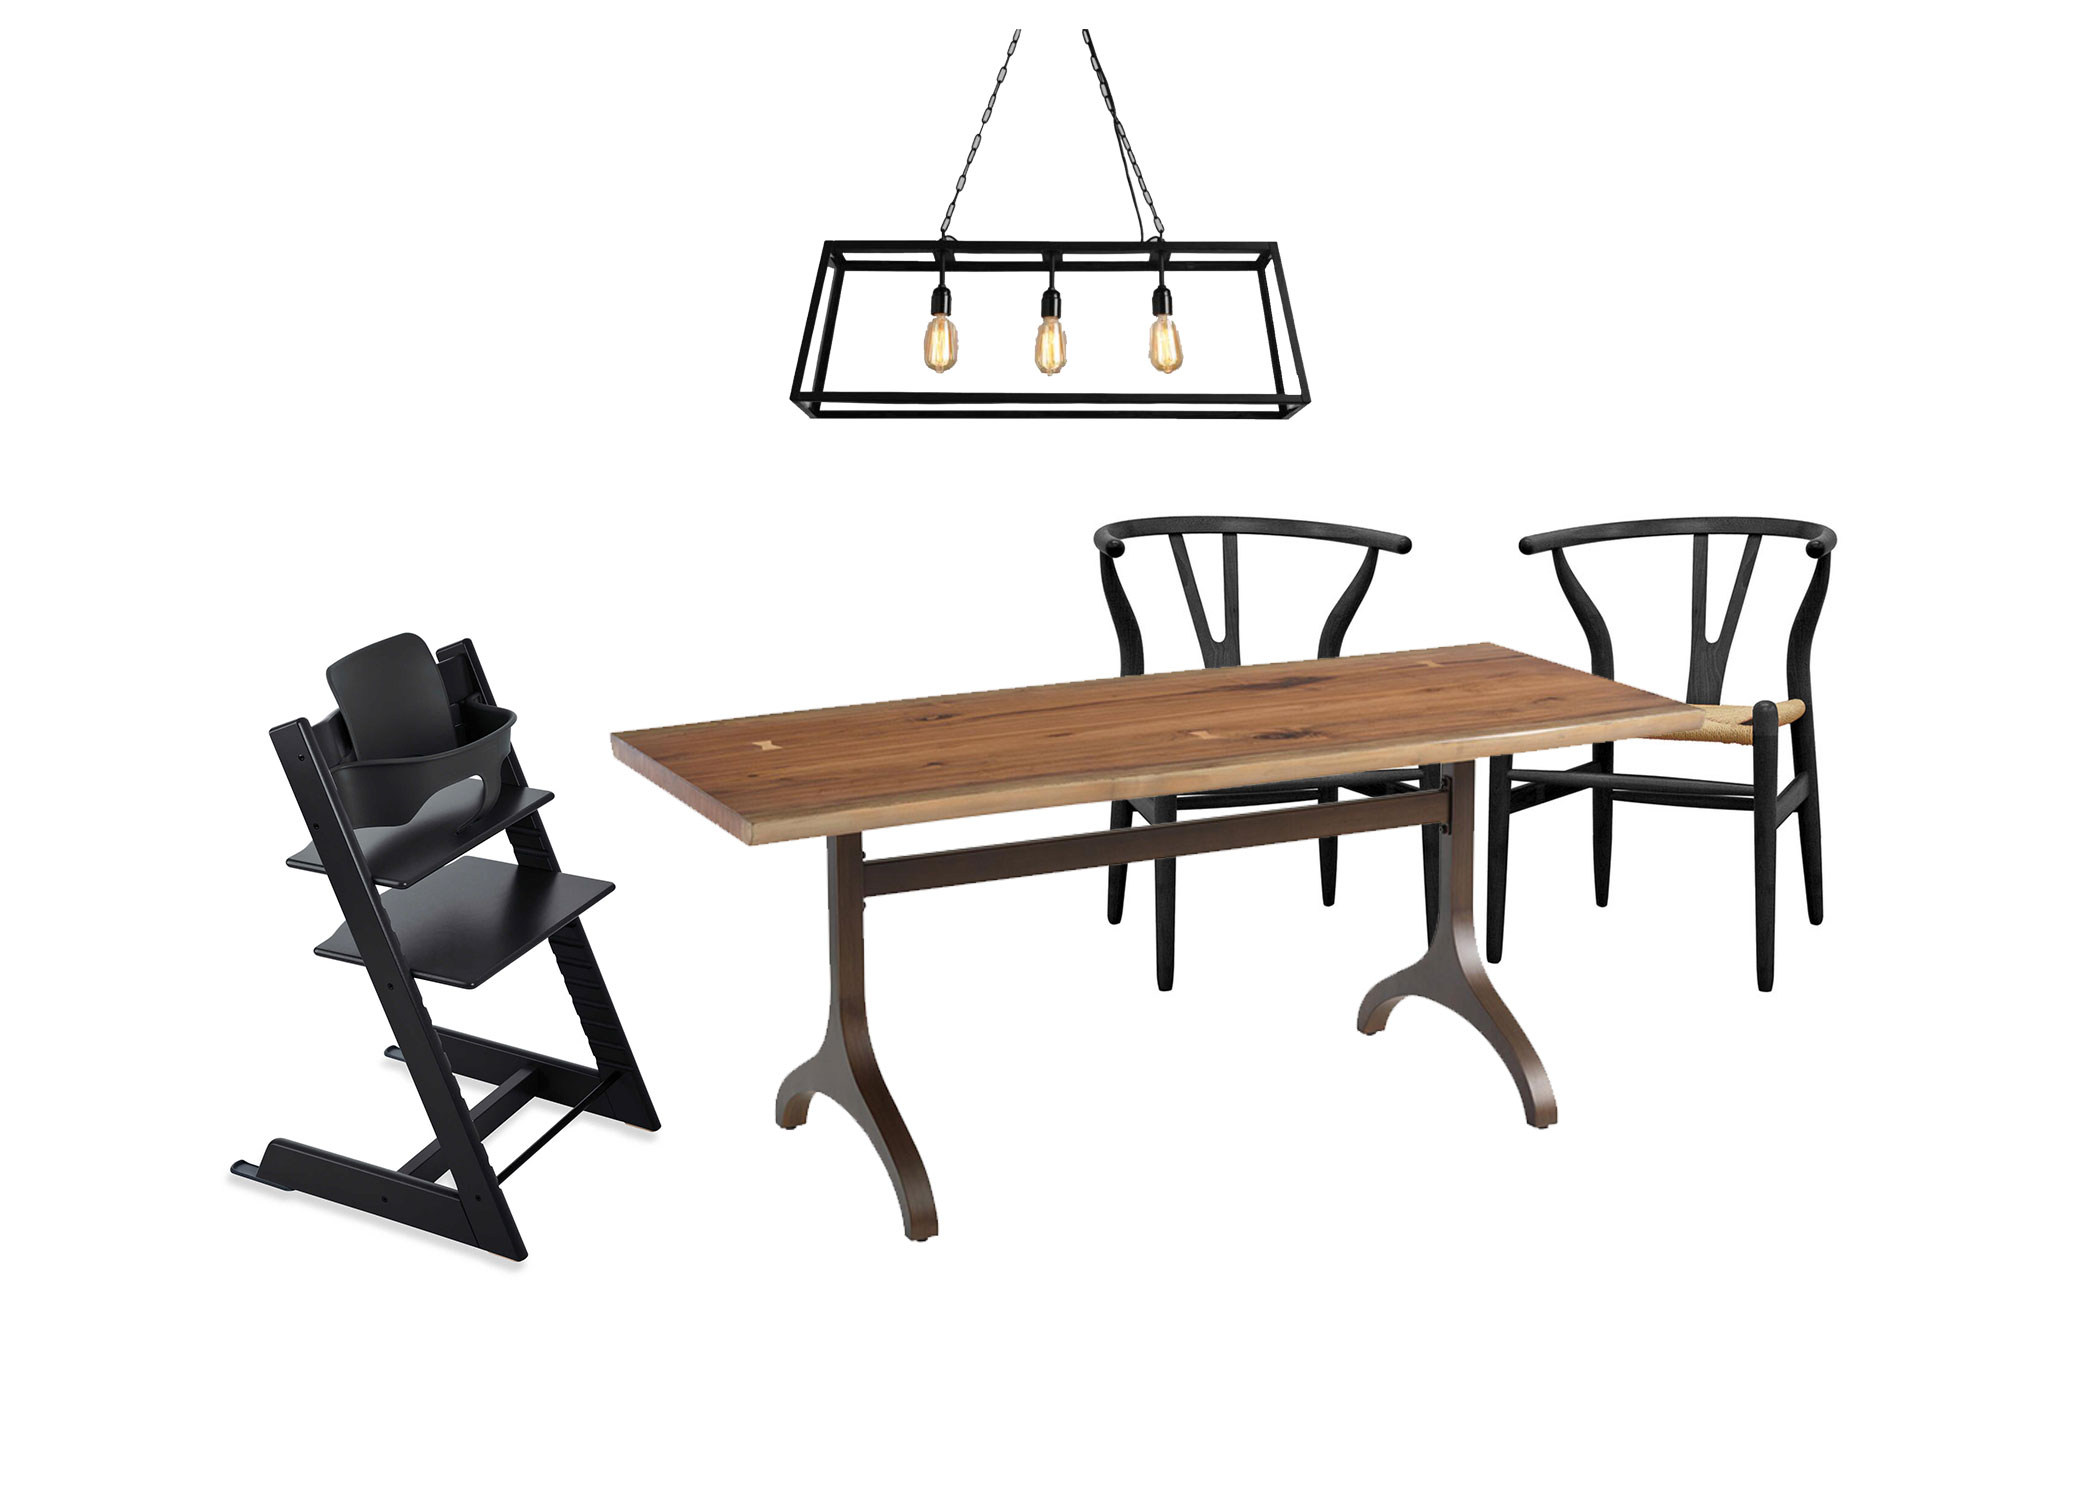 Modern Industrial Dining Room w/ Stokke Tripp Trapp Chair | That Baby Life | thatbabylife.com